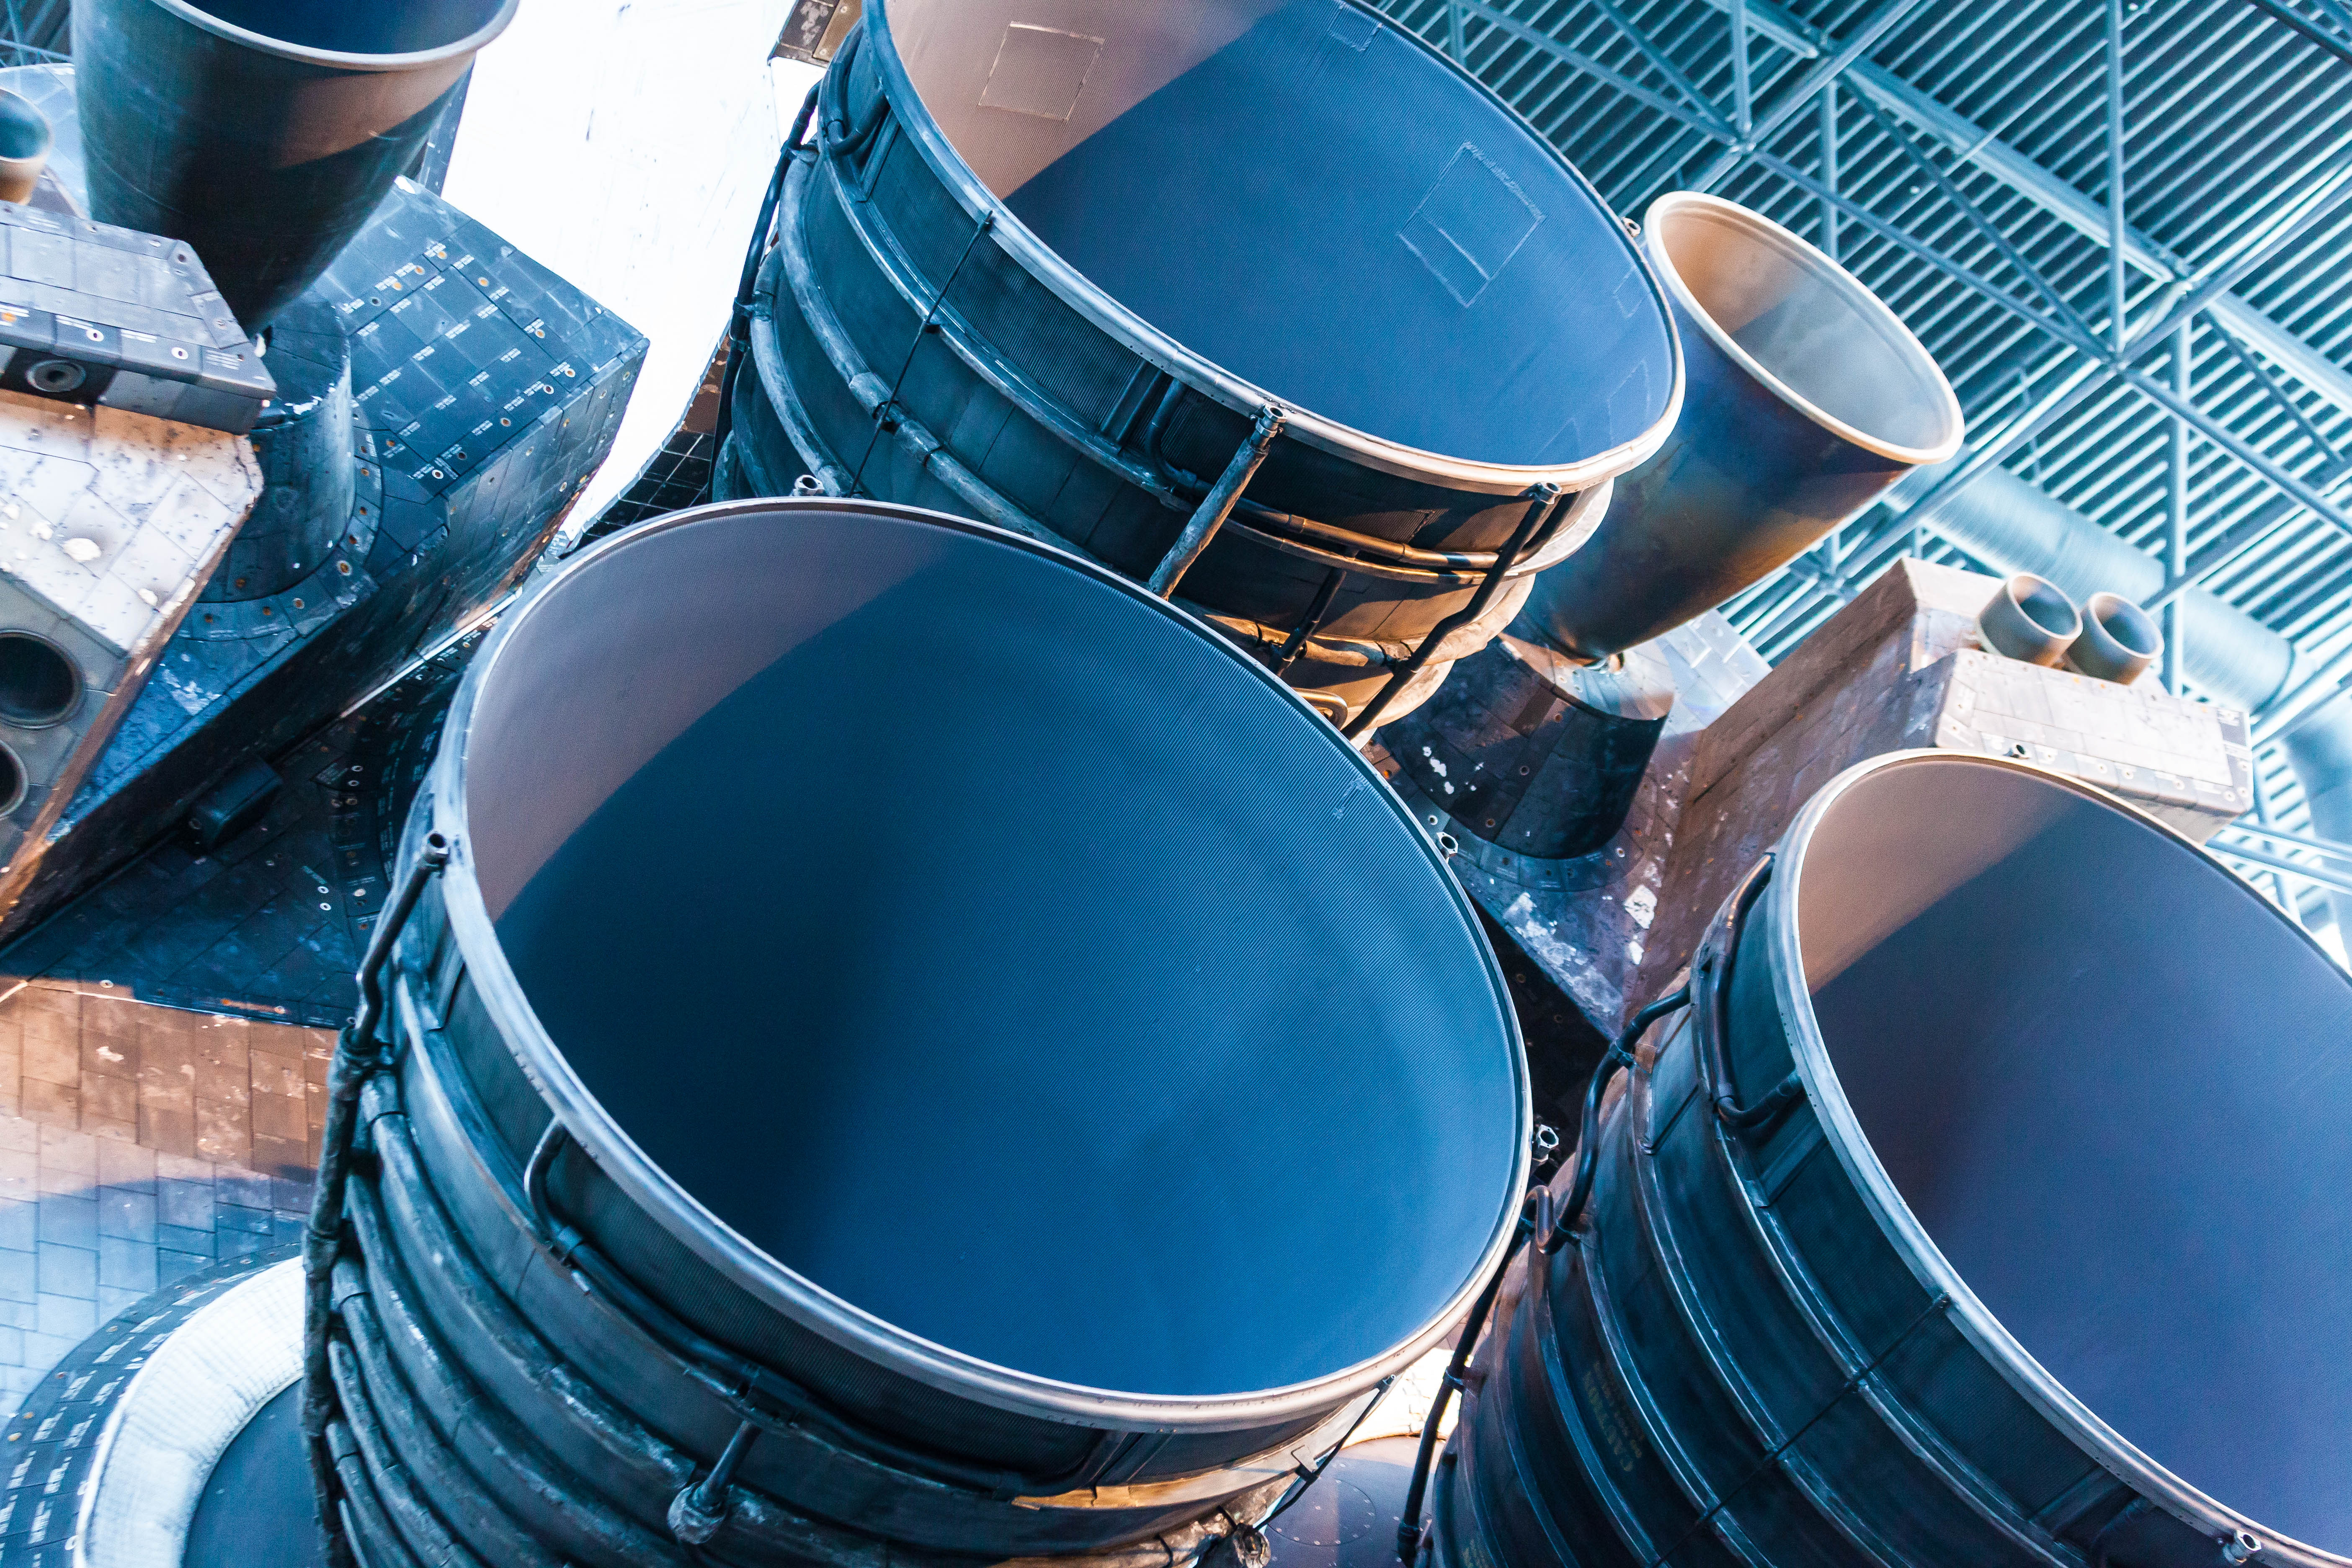 Space Shuttle Discovery Engine